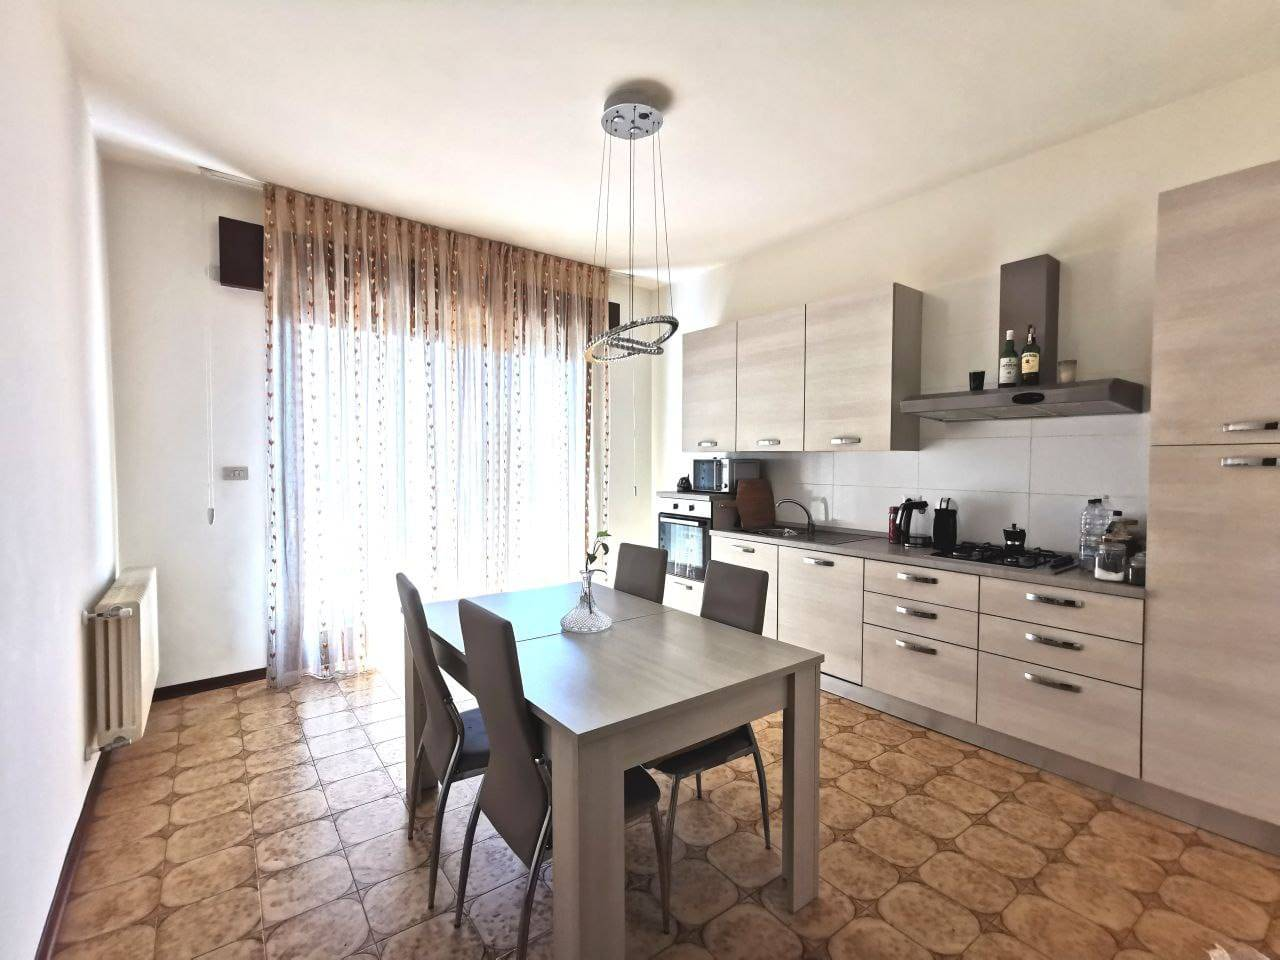 SOTTOMARINA, CHIOGGIA, Apartment for rent, Excellent Condition, Heating Individual heating system, Energetic class: G, placed at 1° on 3, composed